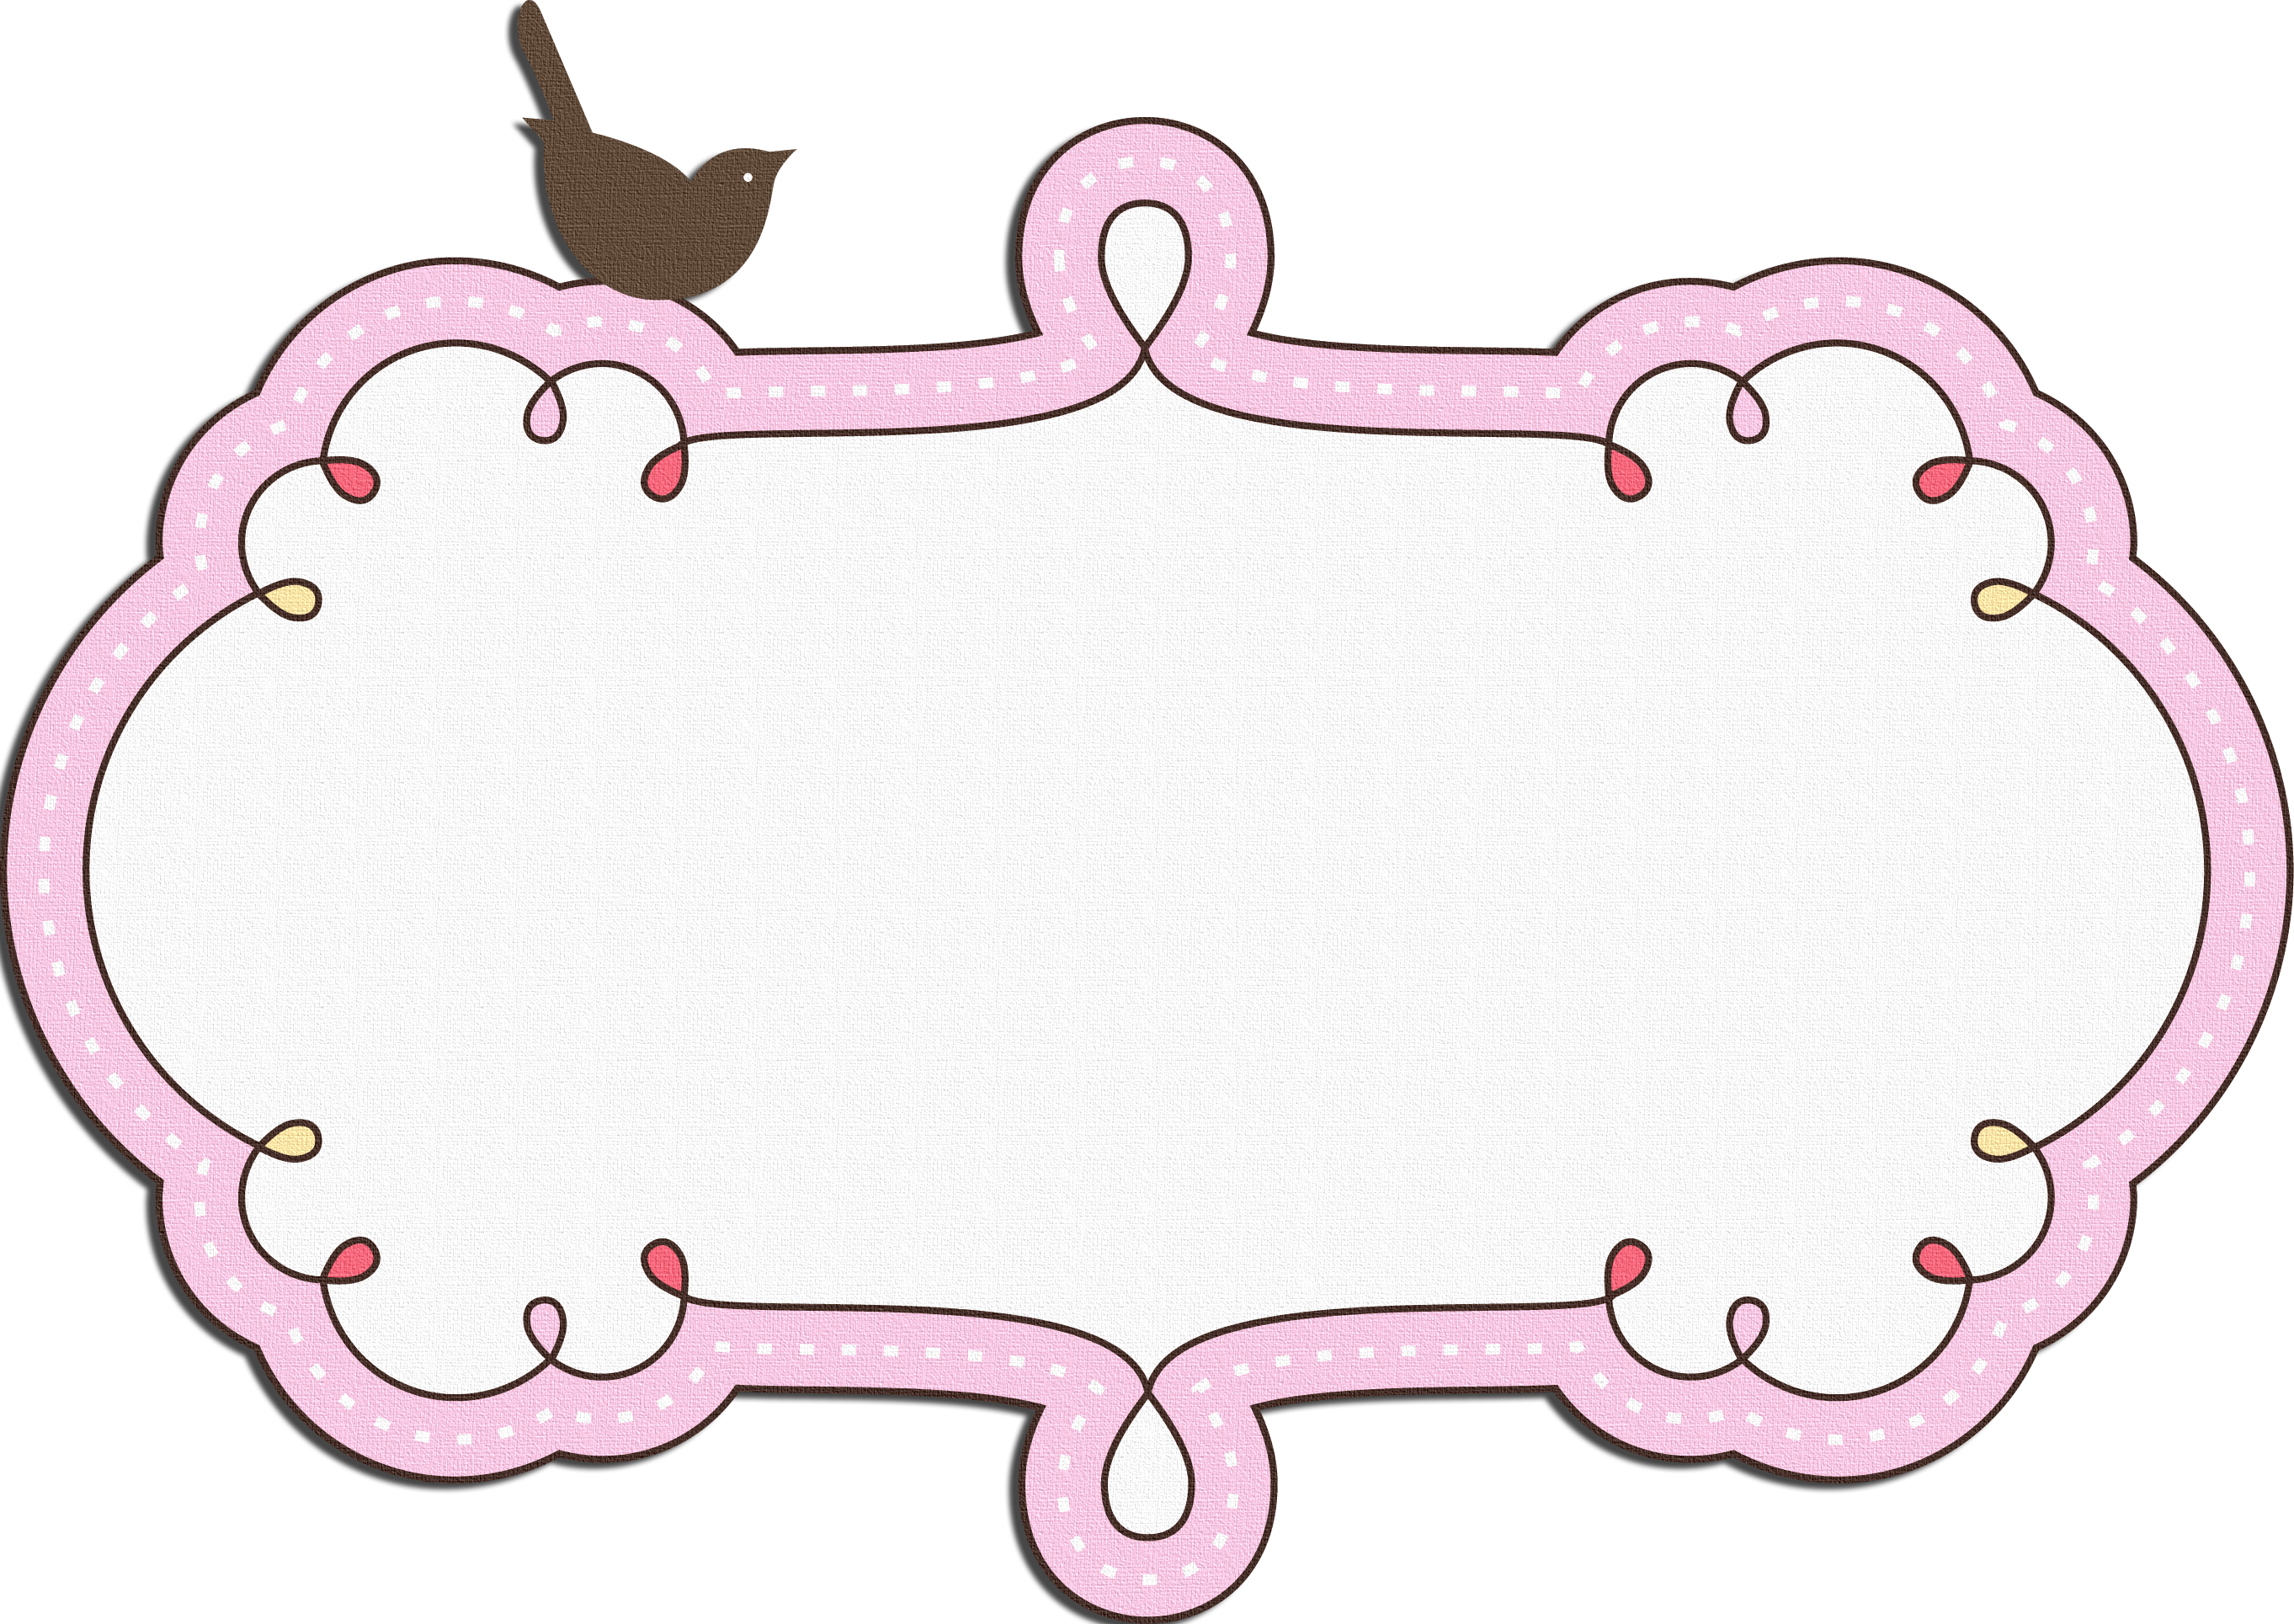 Pinky Bird frame | fondo tarjeta | Tags, Home Decor y Frame